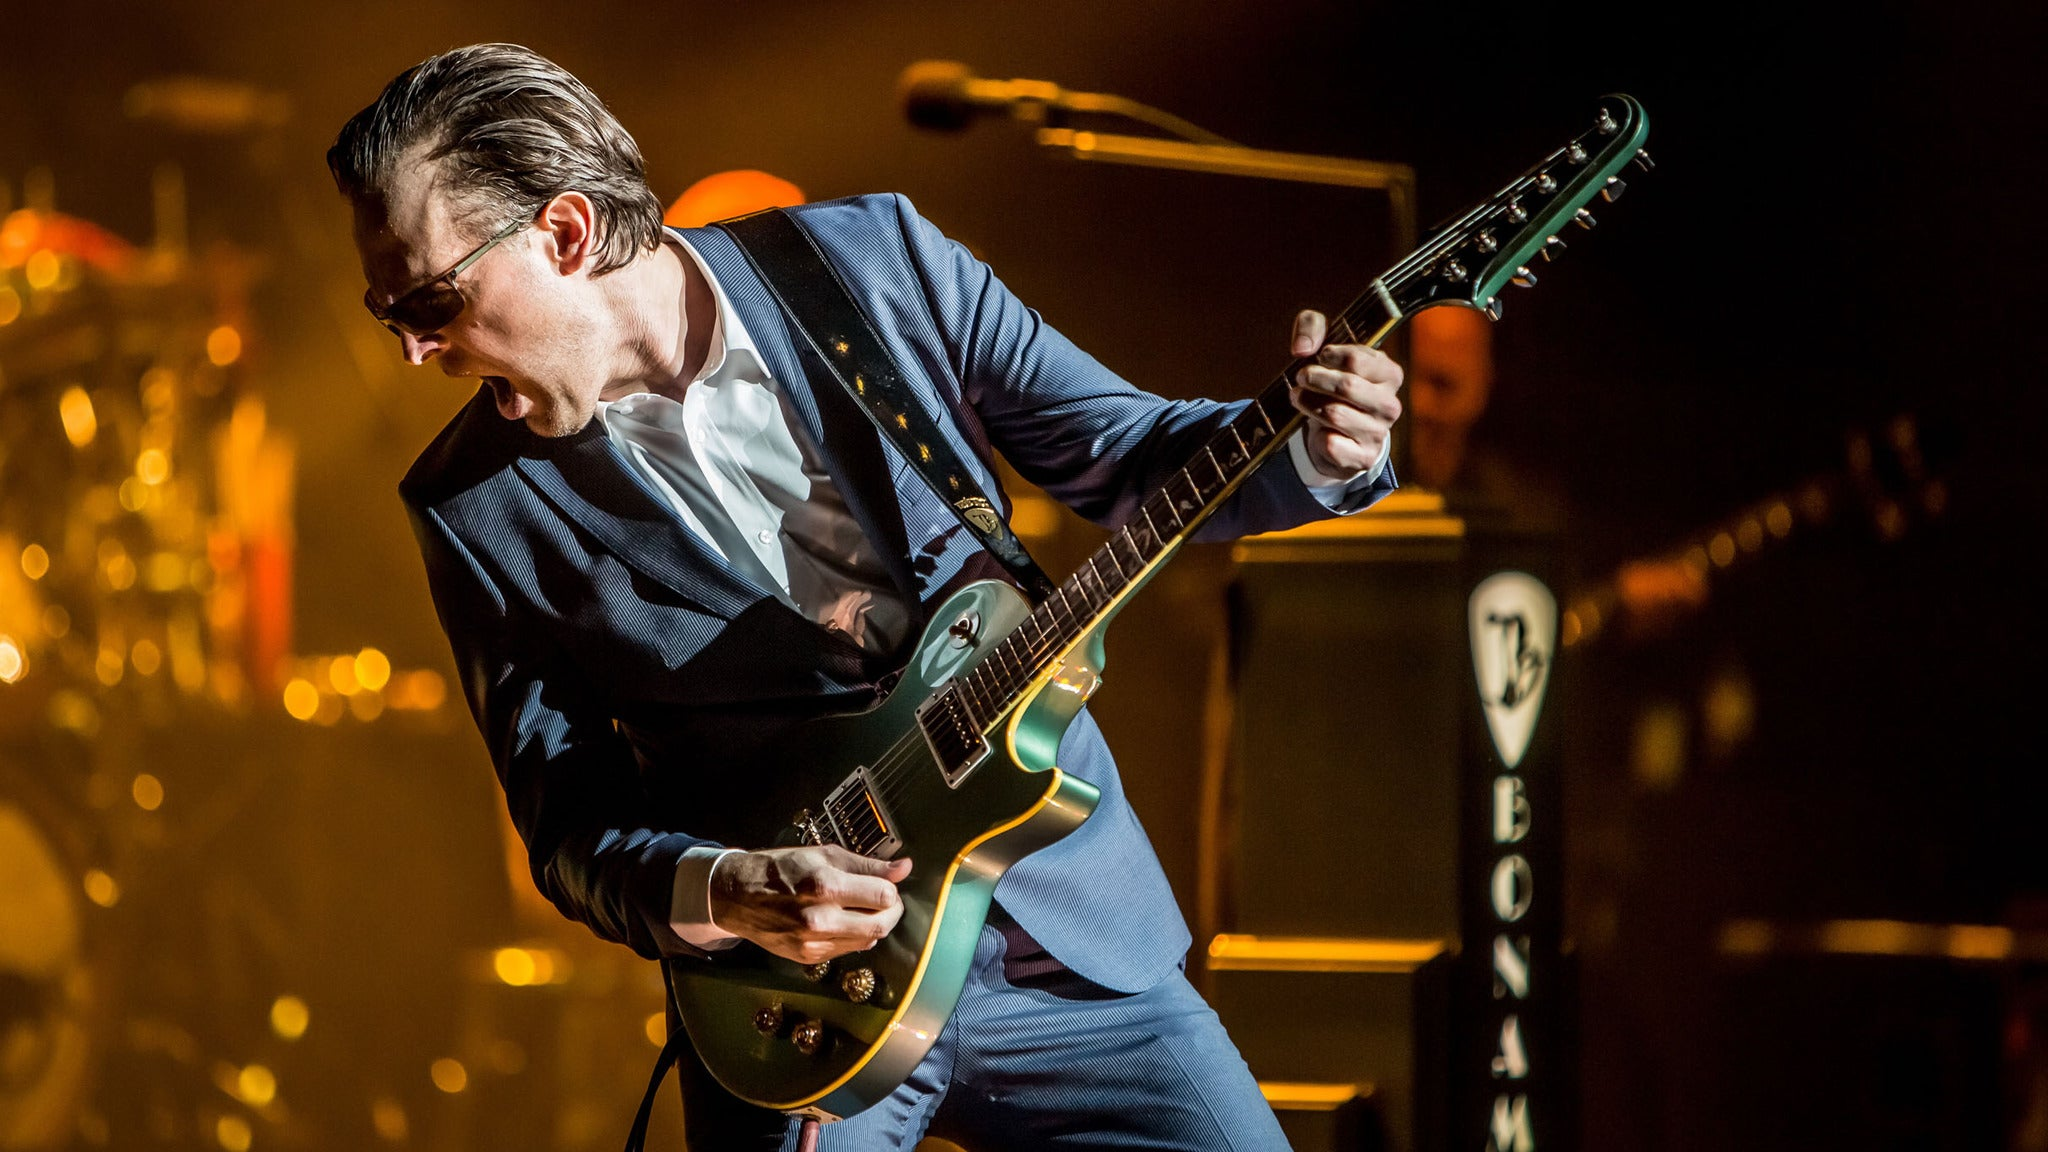 Joe Bonamassa at The Chicago Theatre - Chicago, IL 60601